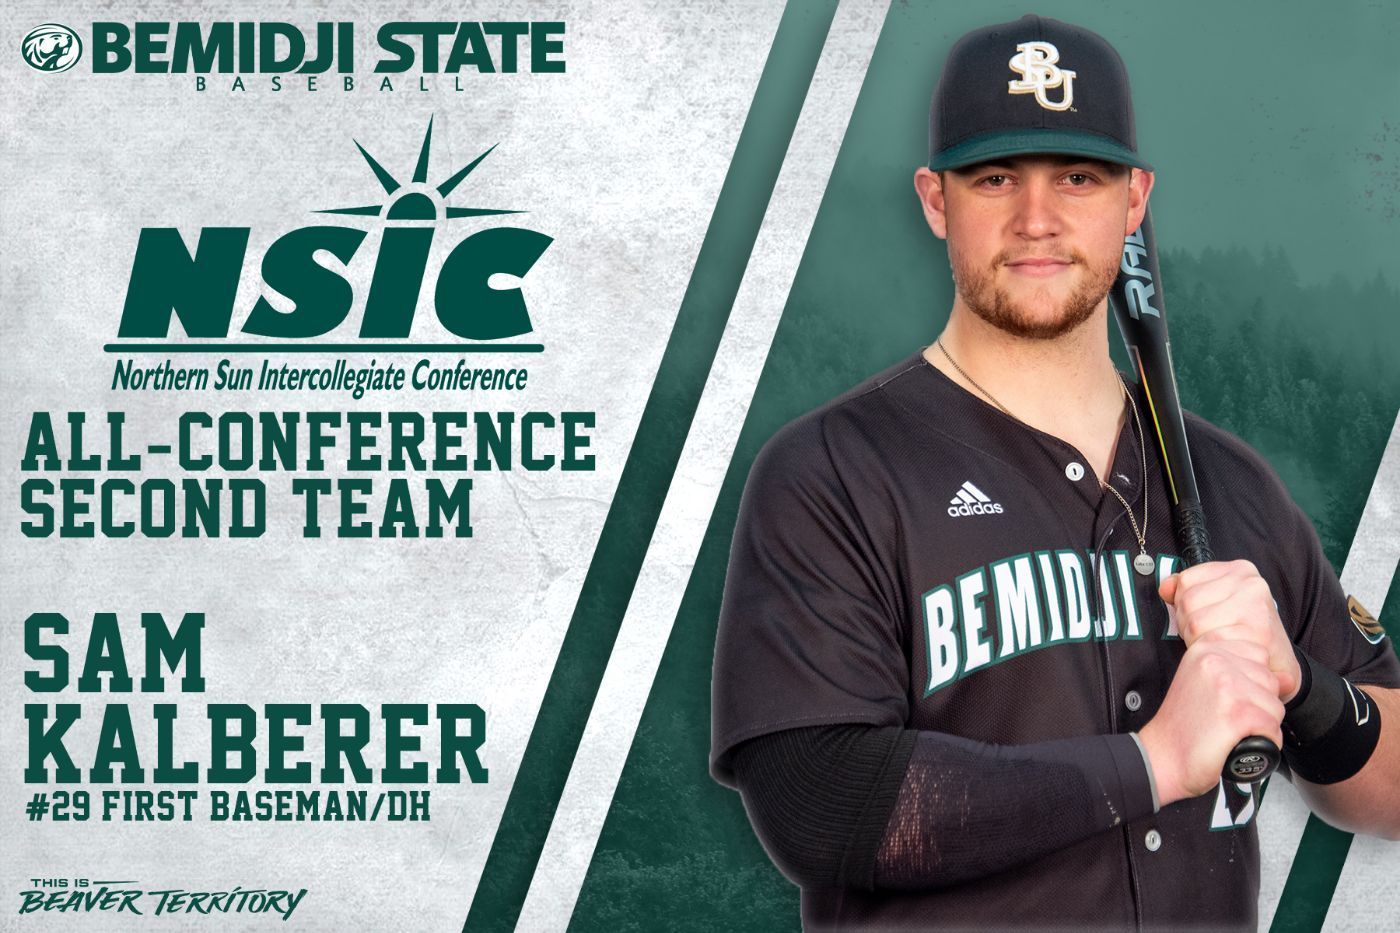 Kalberer earns nod to 2021 NSIC Baseball All-Conference team